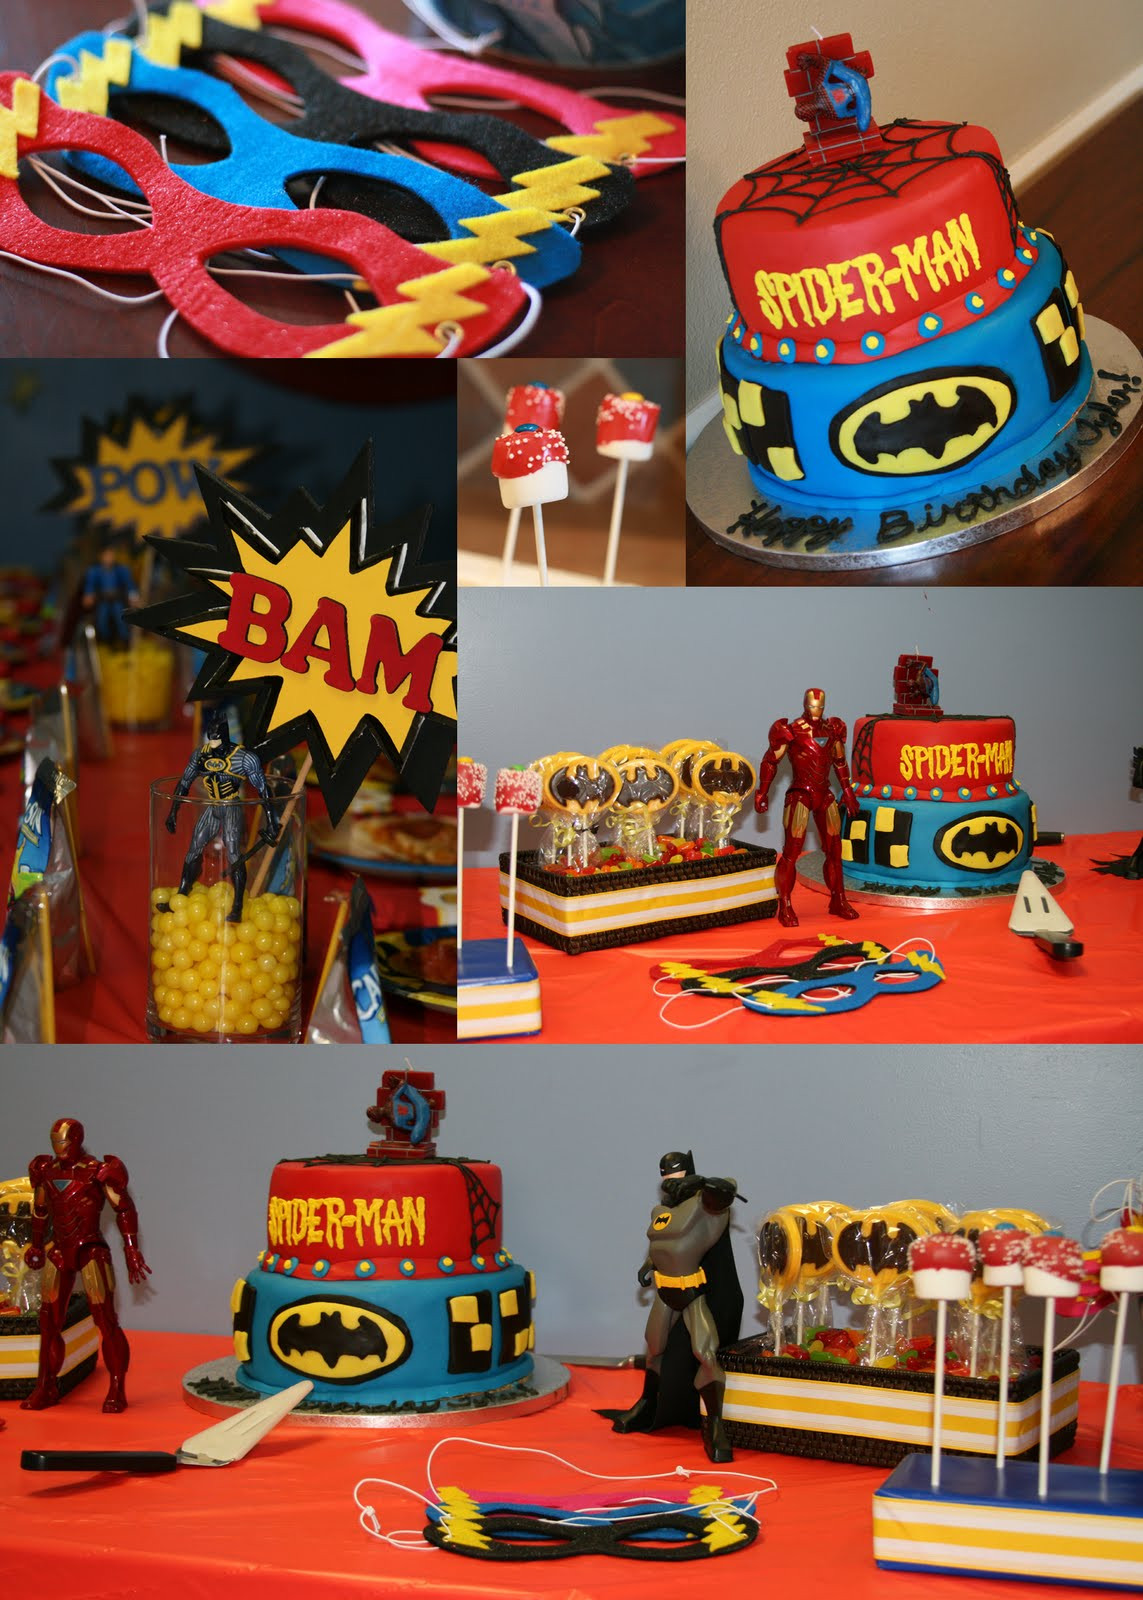 Best ideas about Superhero Birthday Decorations . Save or Pin Unique Card Designs Superhero Birthday Party Now.